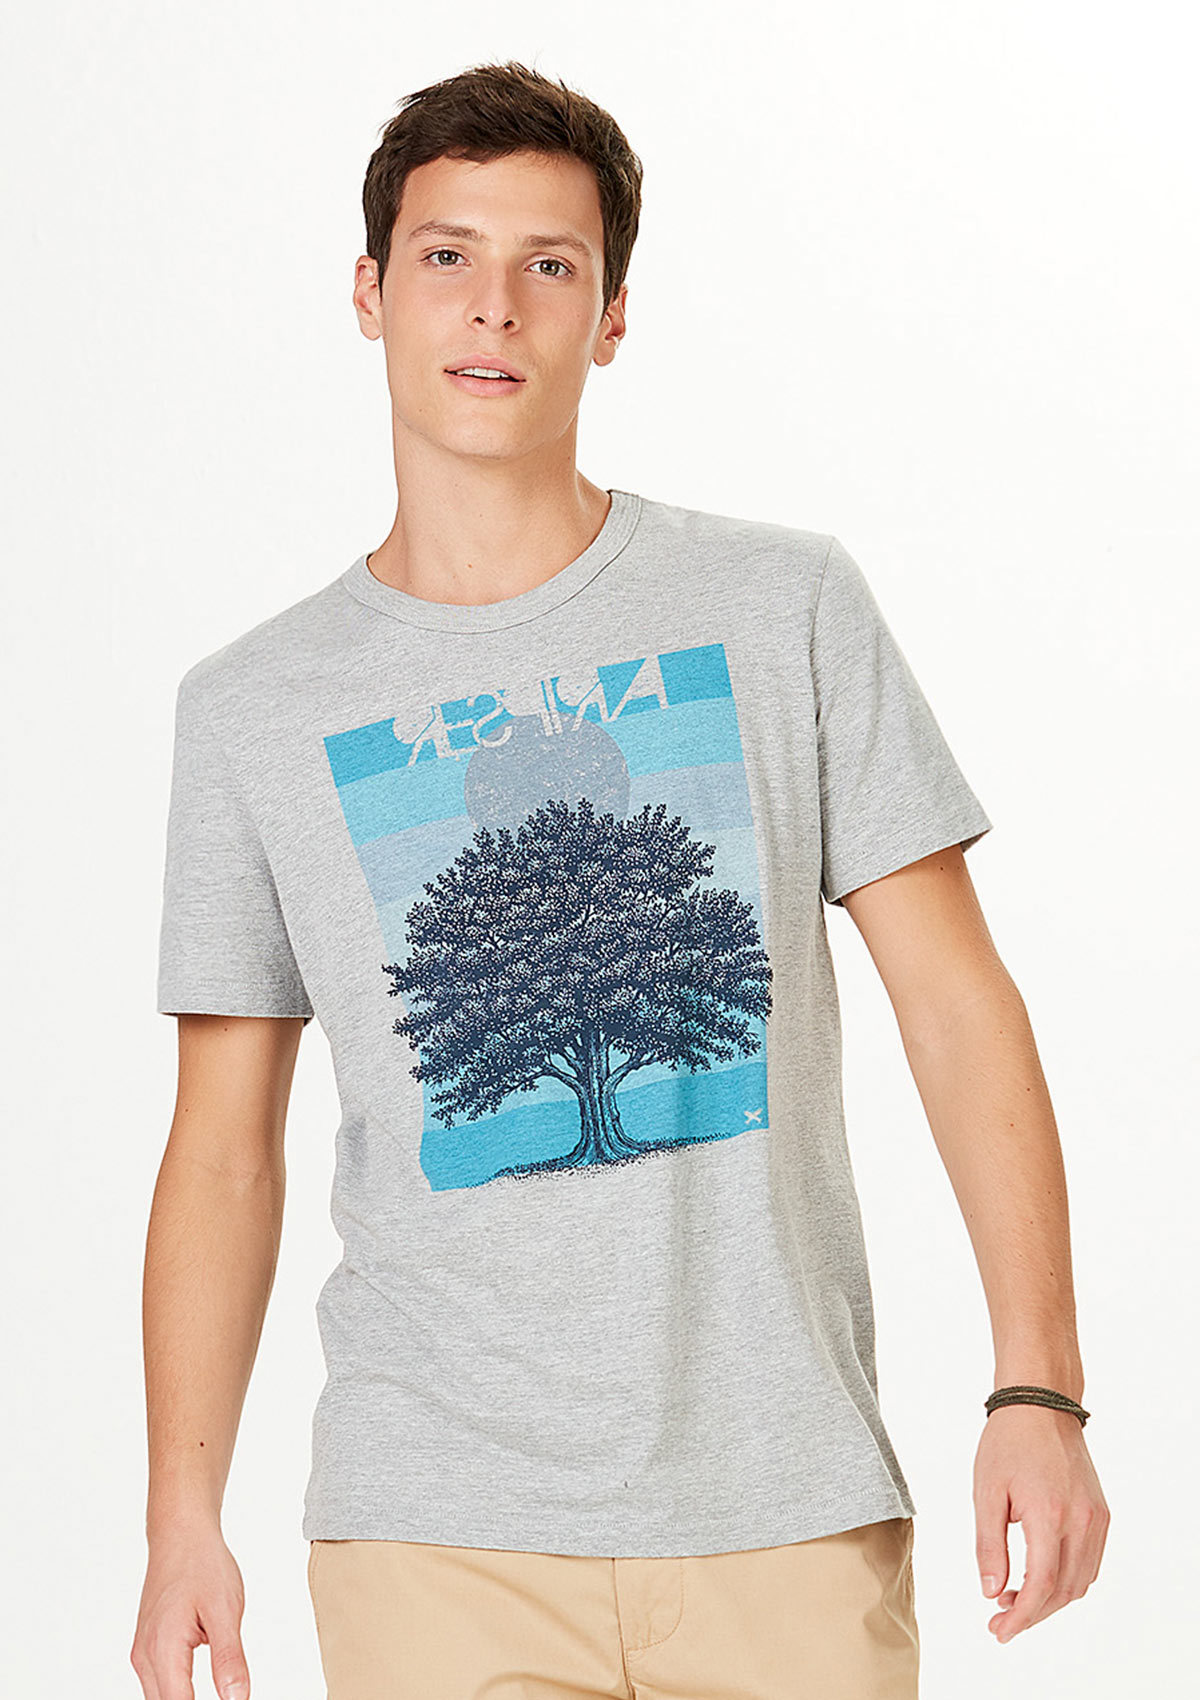 Camiseta Masculina Regular Com Estampa